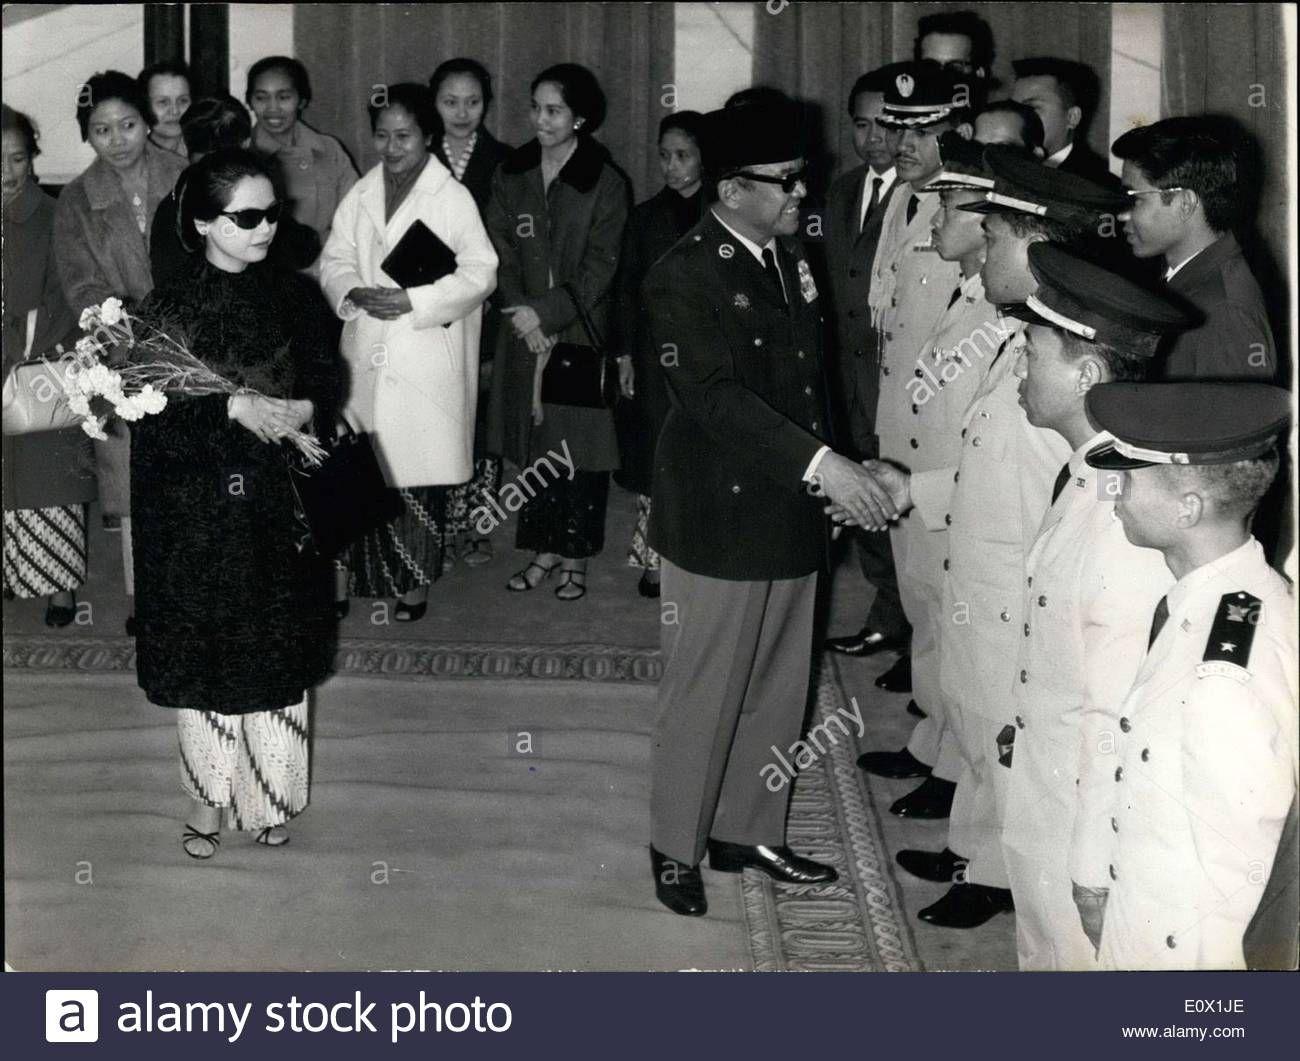 Download this stock image oct 17 1964 here are president download this stock image oct 17 1964 here are president sukarno and his wife greeting members of indonesian embassy upon their arrival in paris m4hsunfo